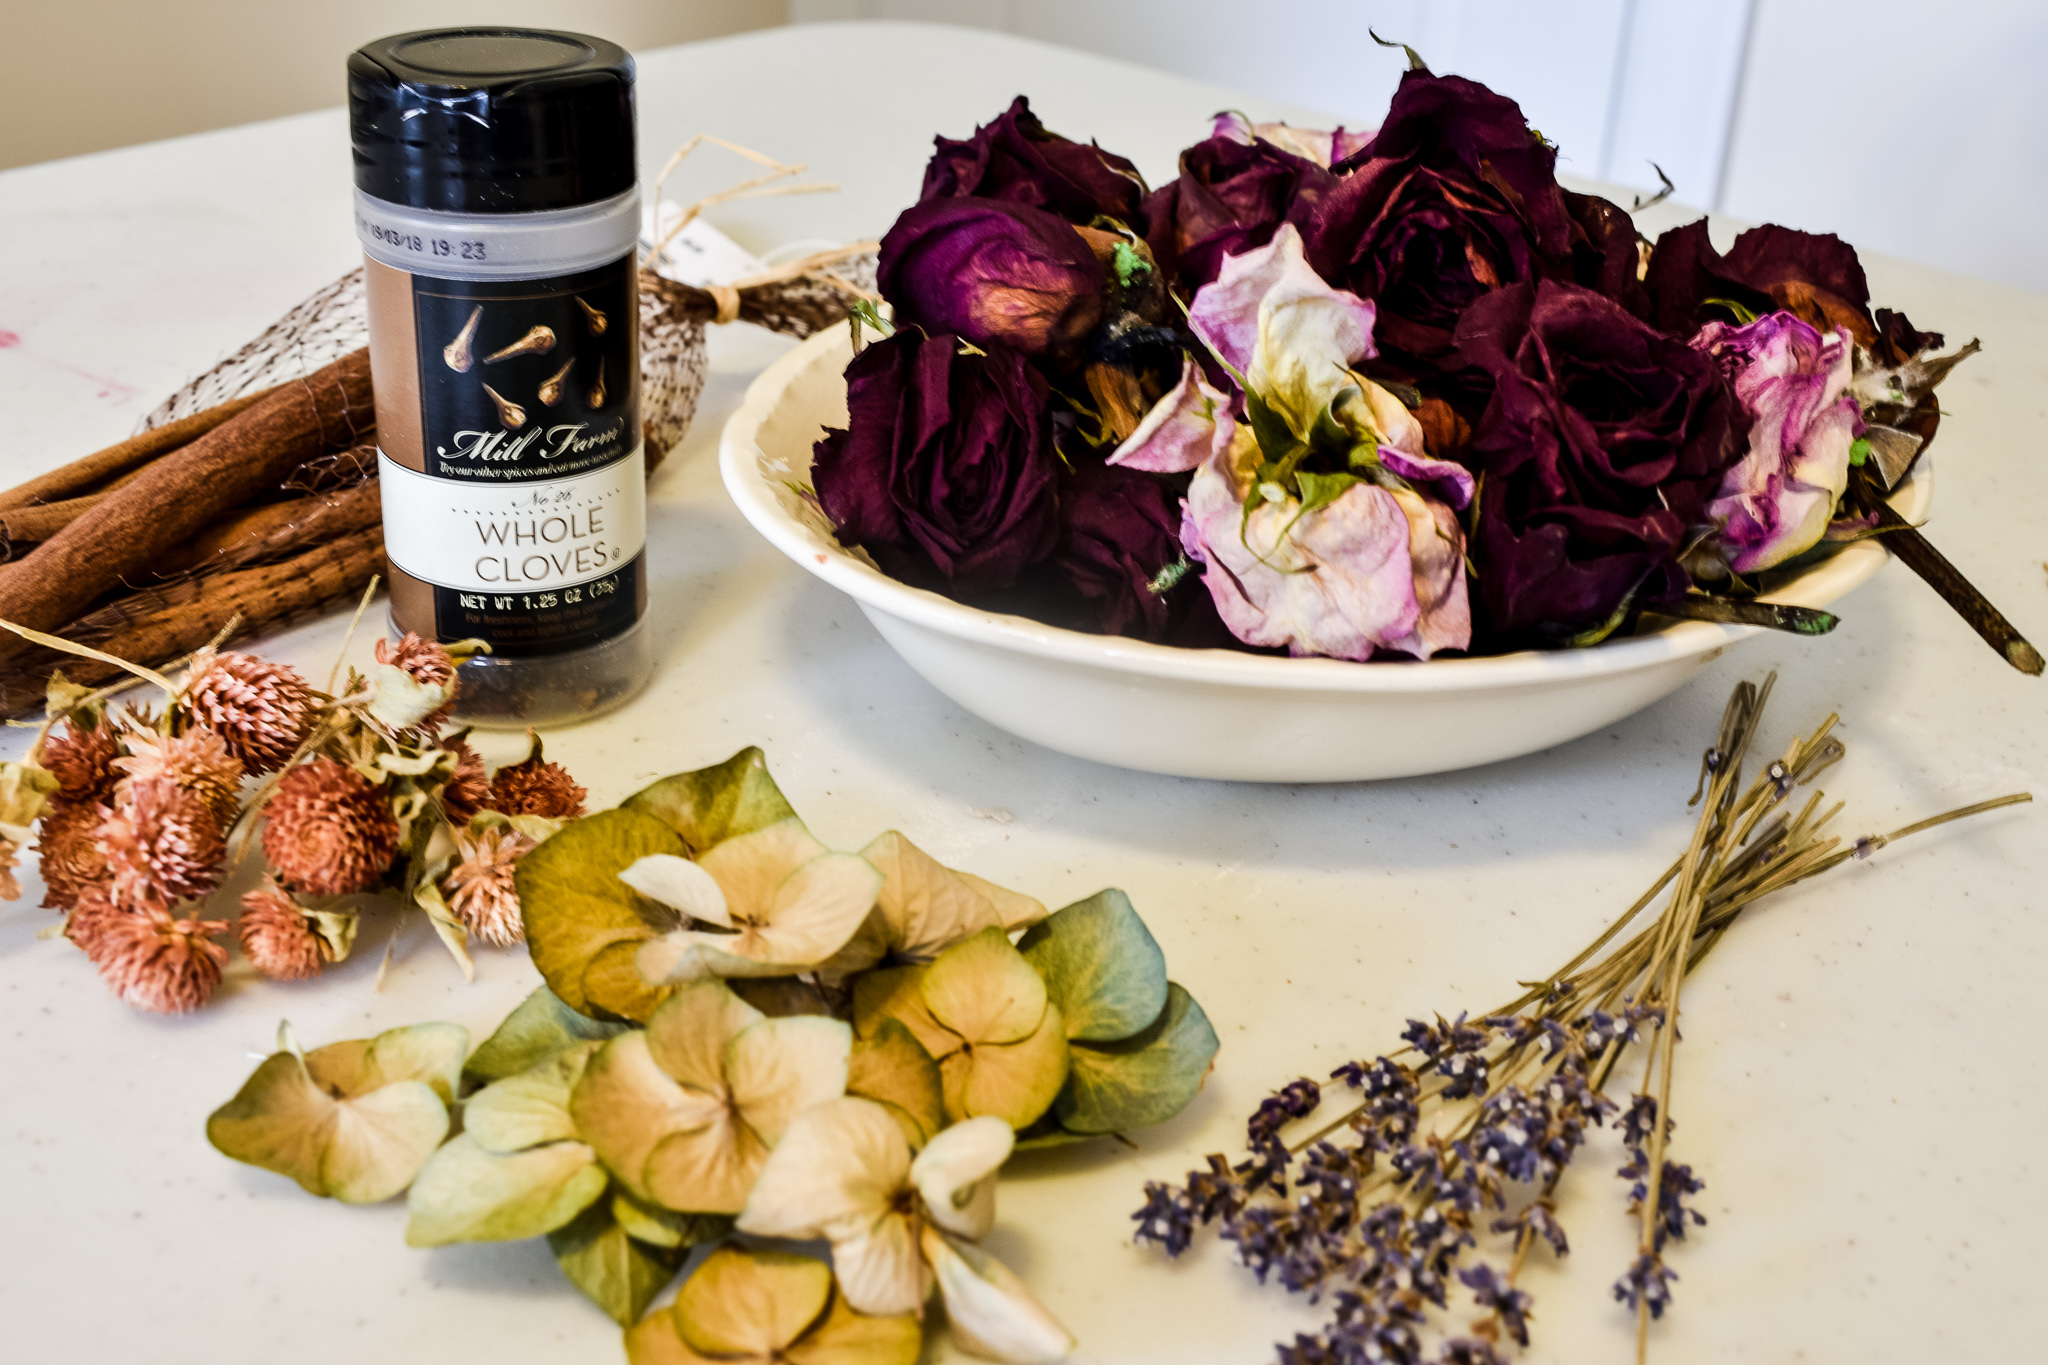 dried florals and spices needed to make a rose petal jar